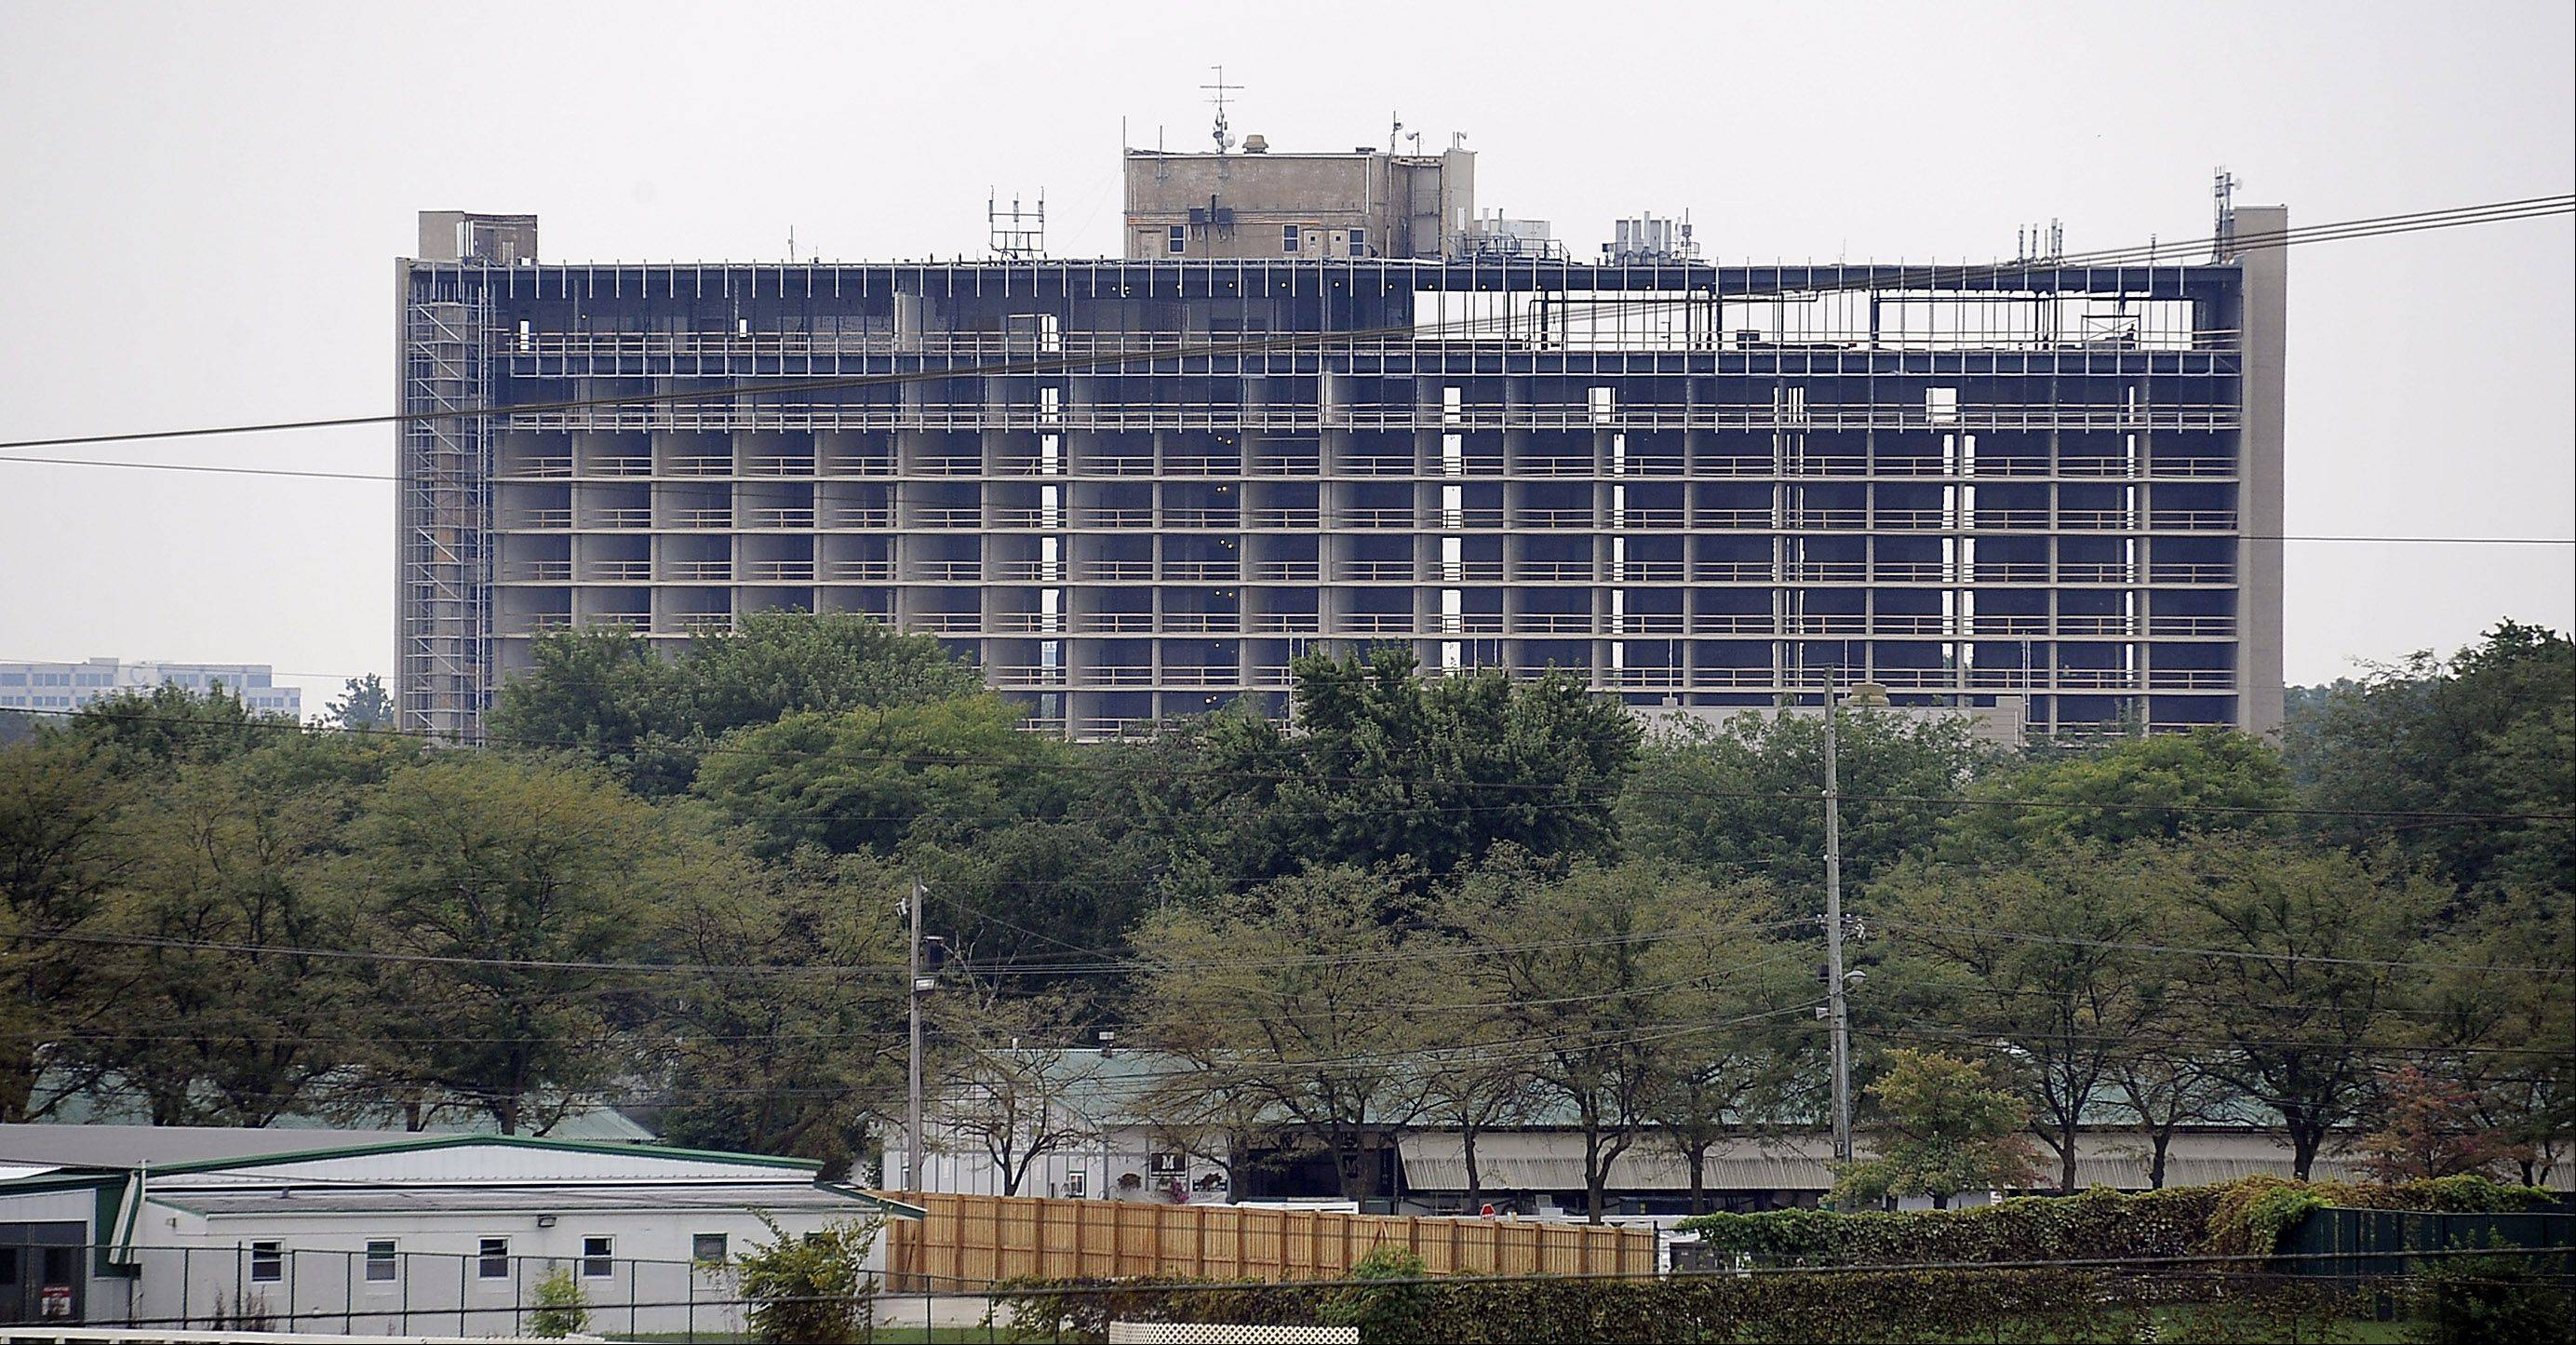 New Sheraton hotel coming to Arlington Downs site